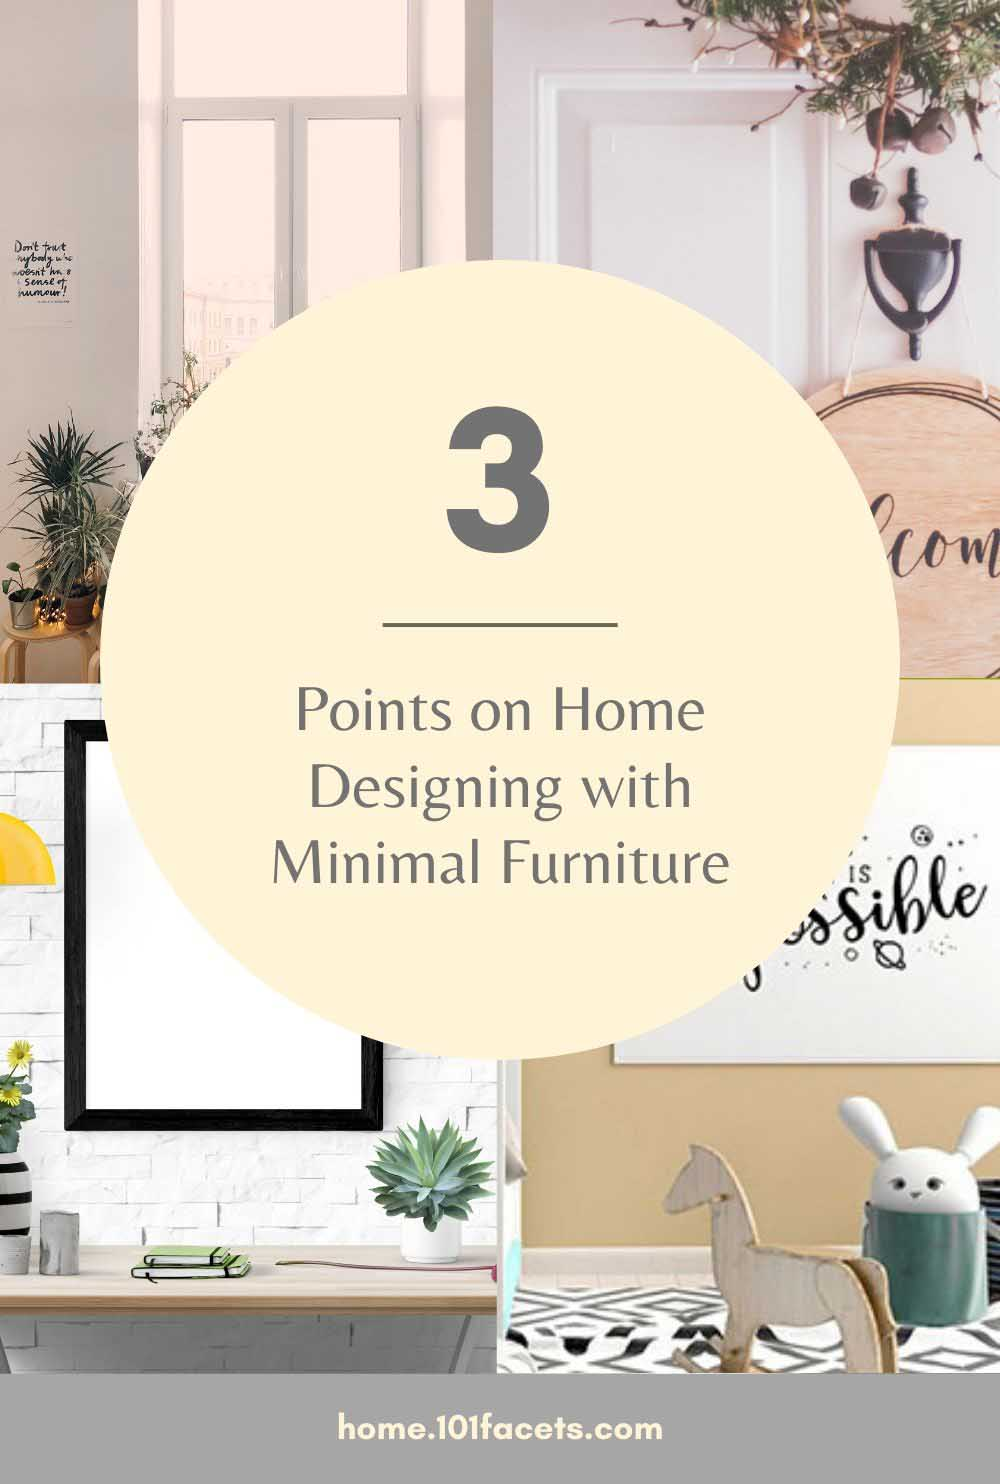 3 Points on Home Designing with Minimal Furniture